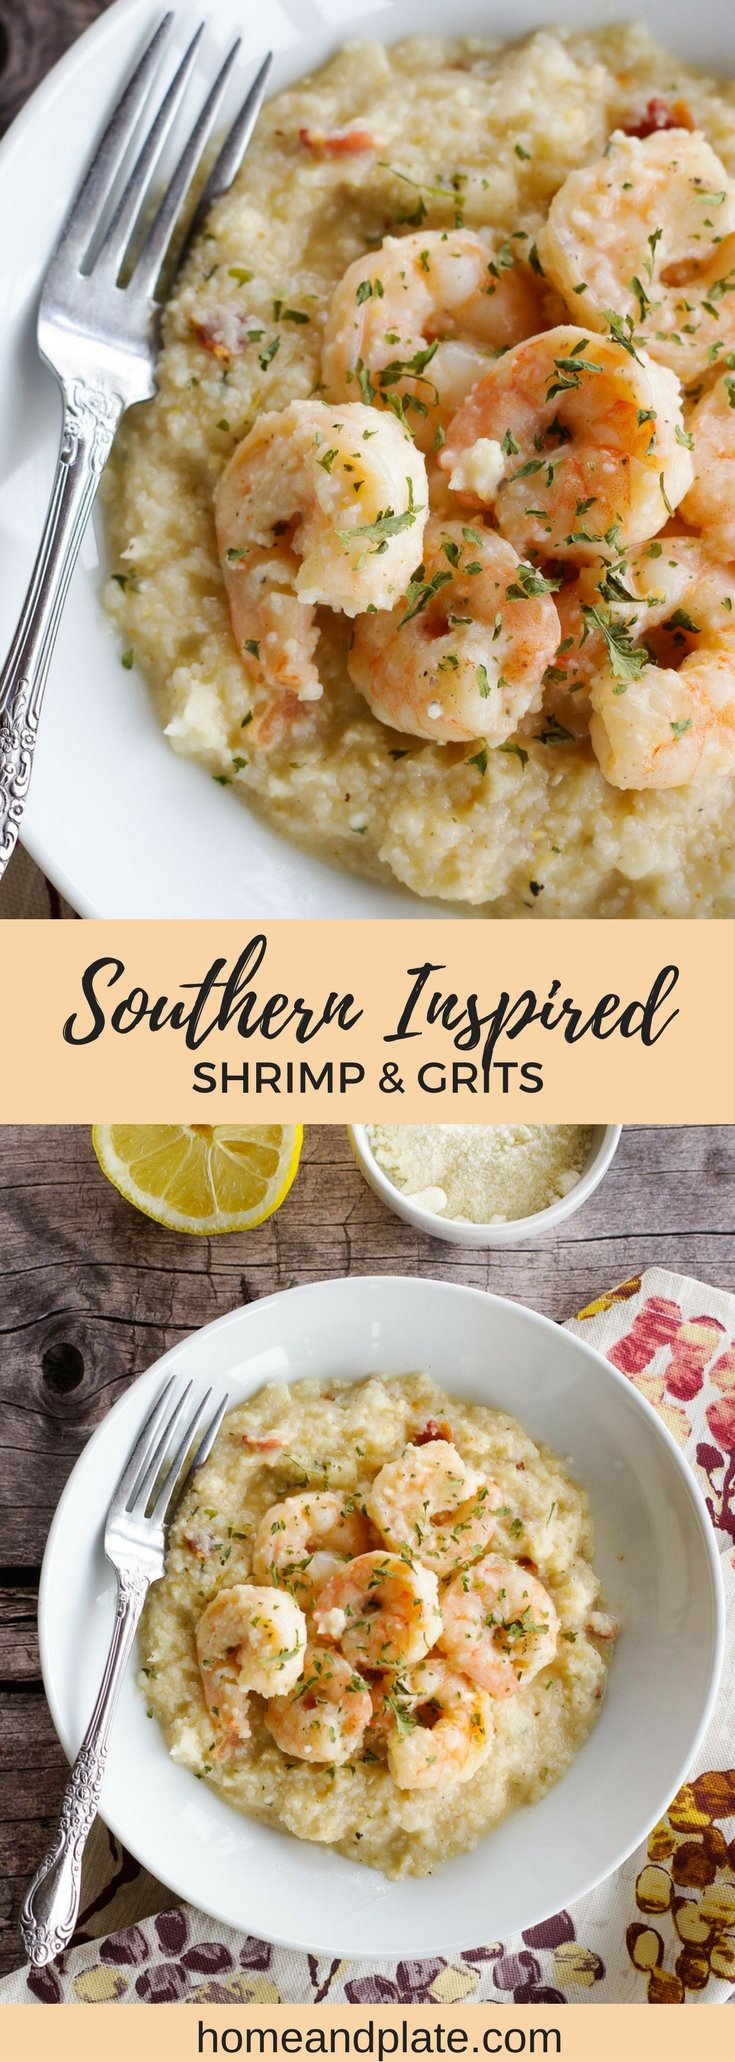 Southern-Inspired Shrimp & Grits | www.homeandplate.com | Get dinner on the table in under 30 minutes with this delicious and easy cheesy shrimp and grits.